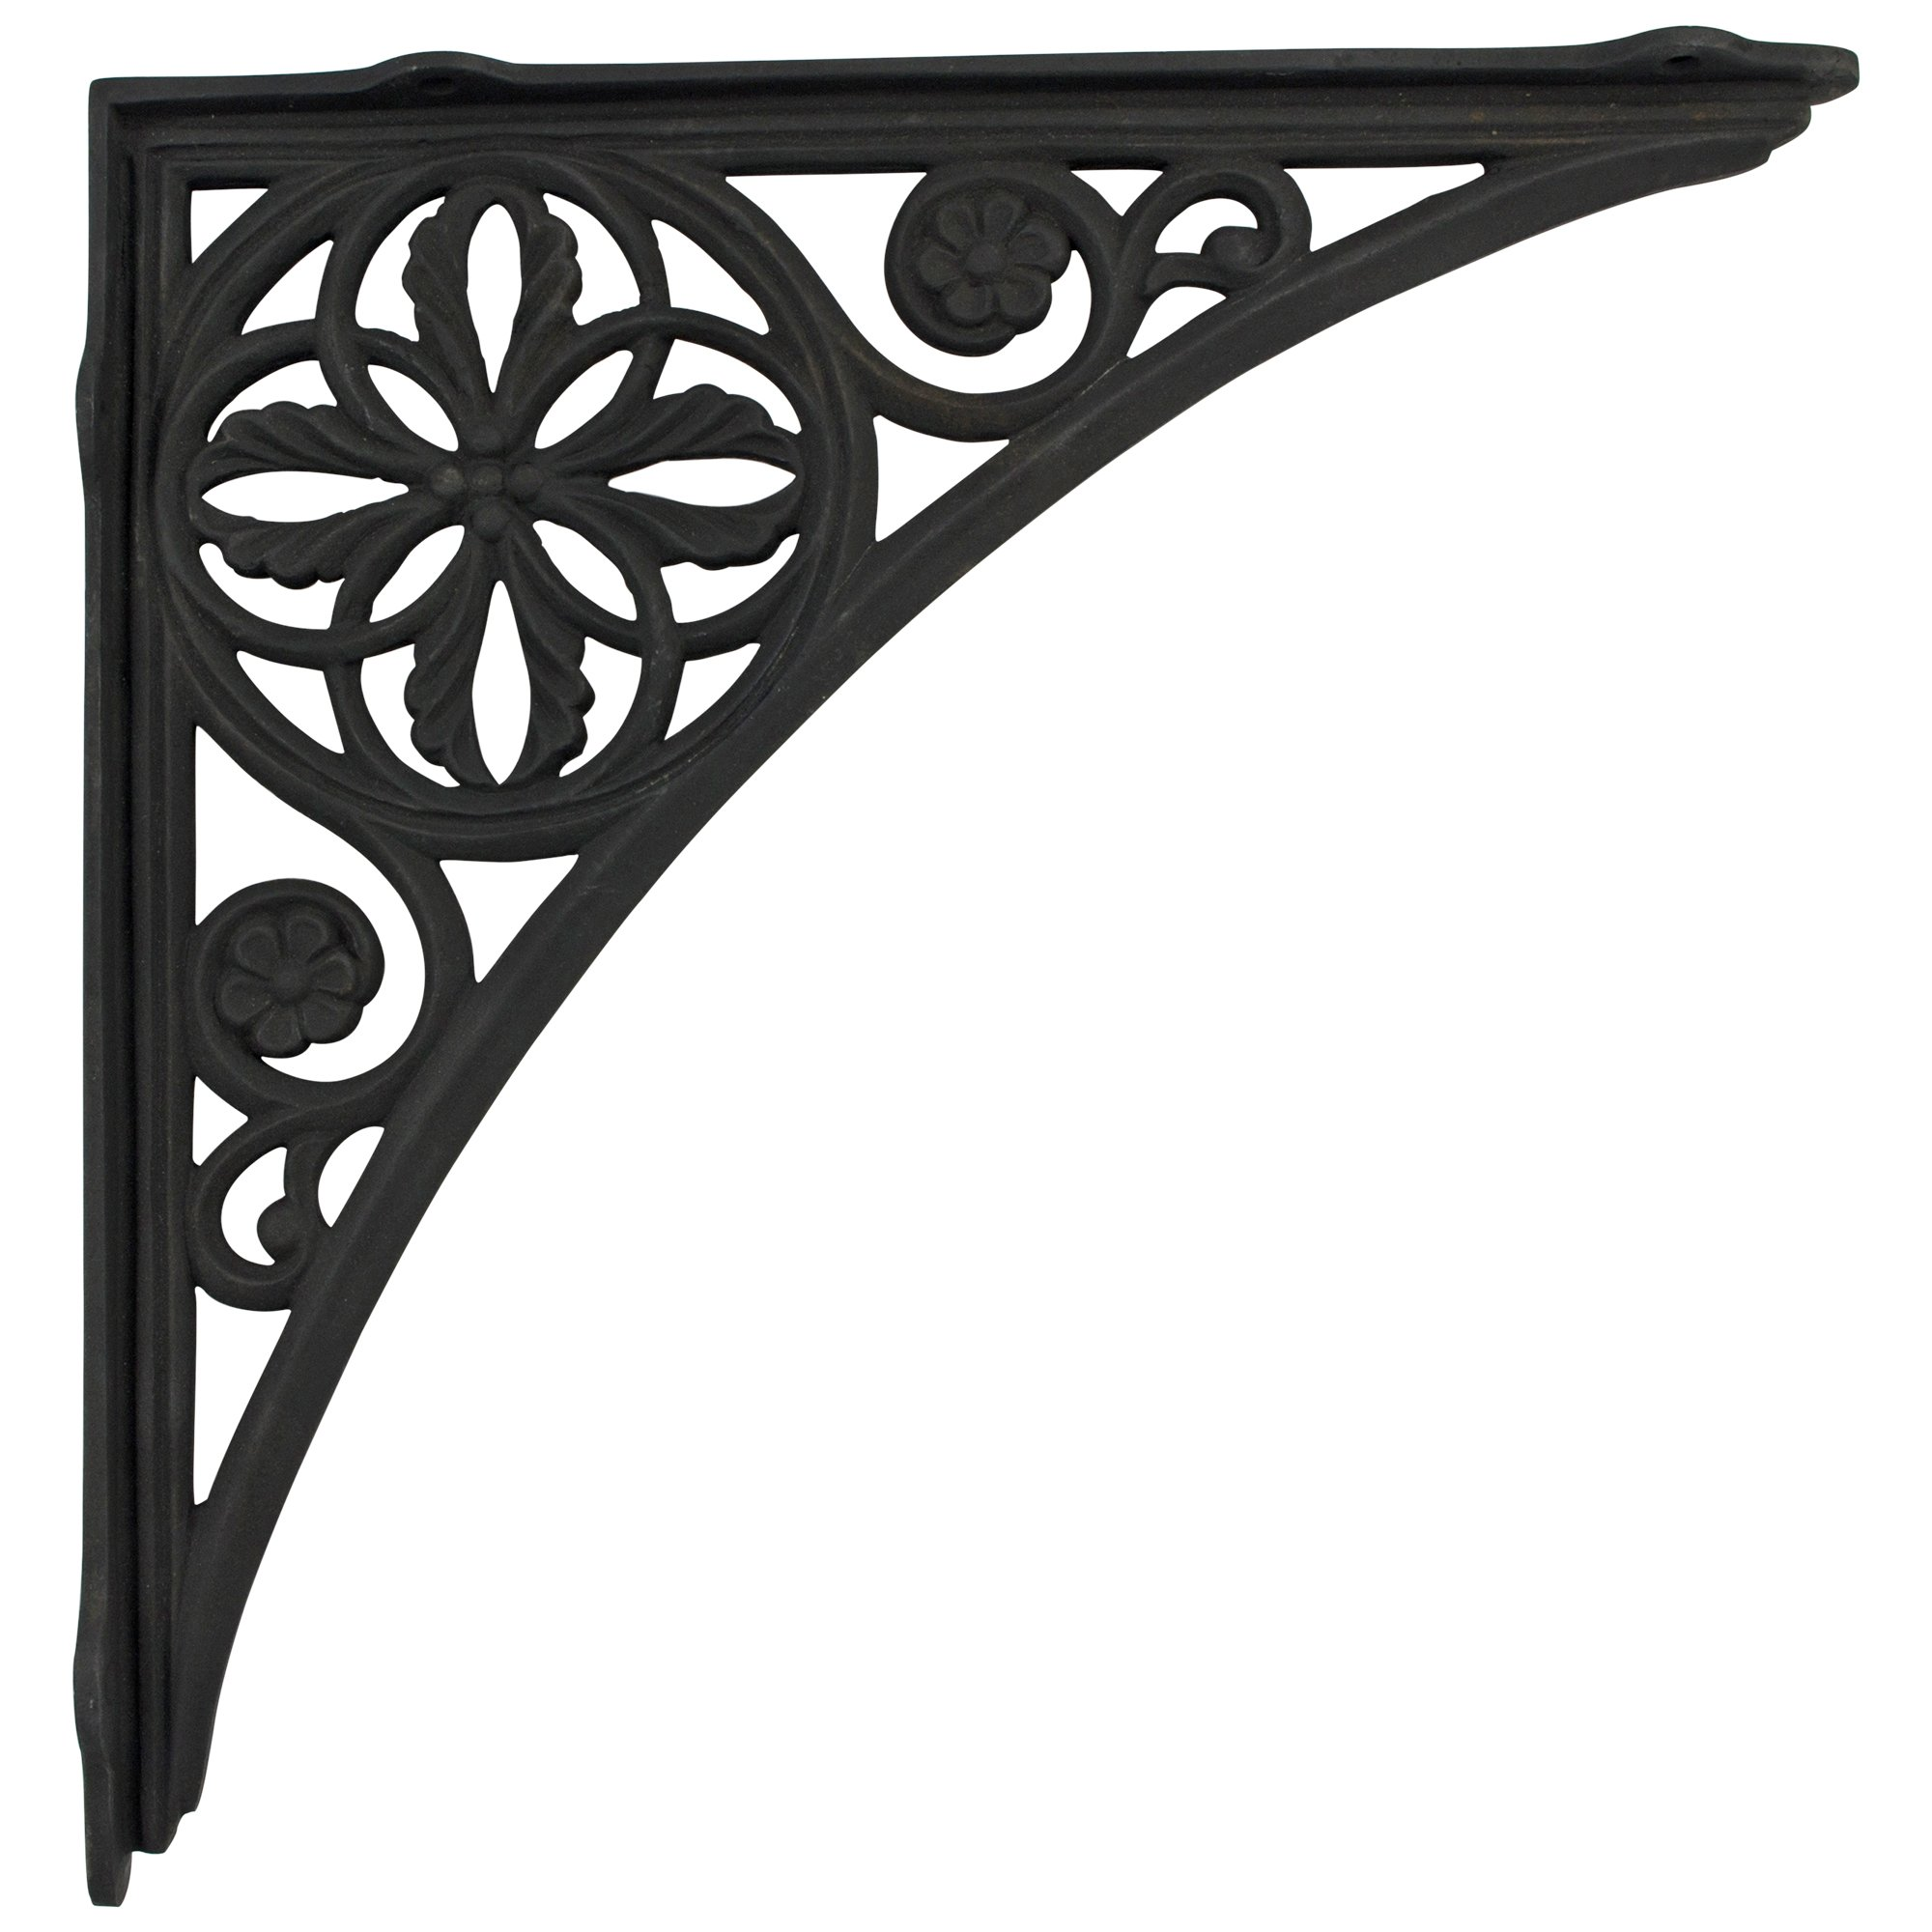 Wall Bracket Cast Iron Victorian Vintage style BIG HUGE for shelves sink old fashioned by The King's Bay